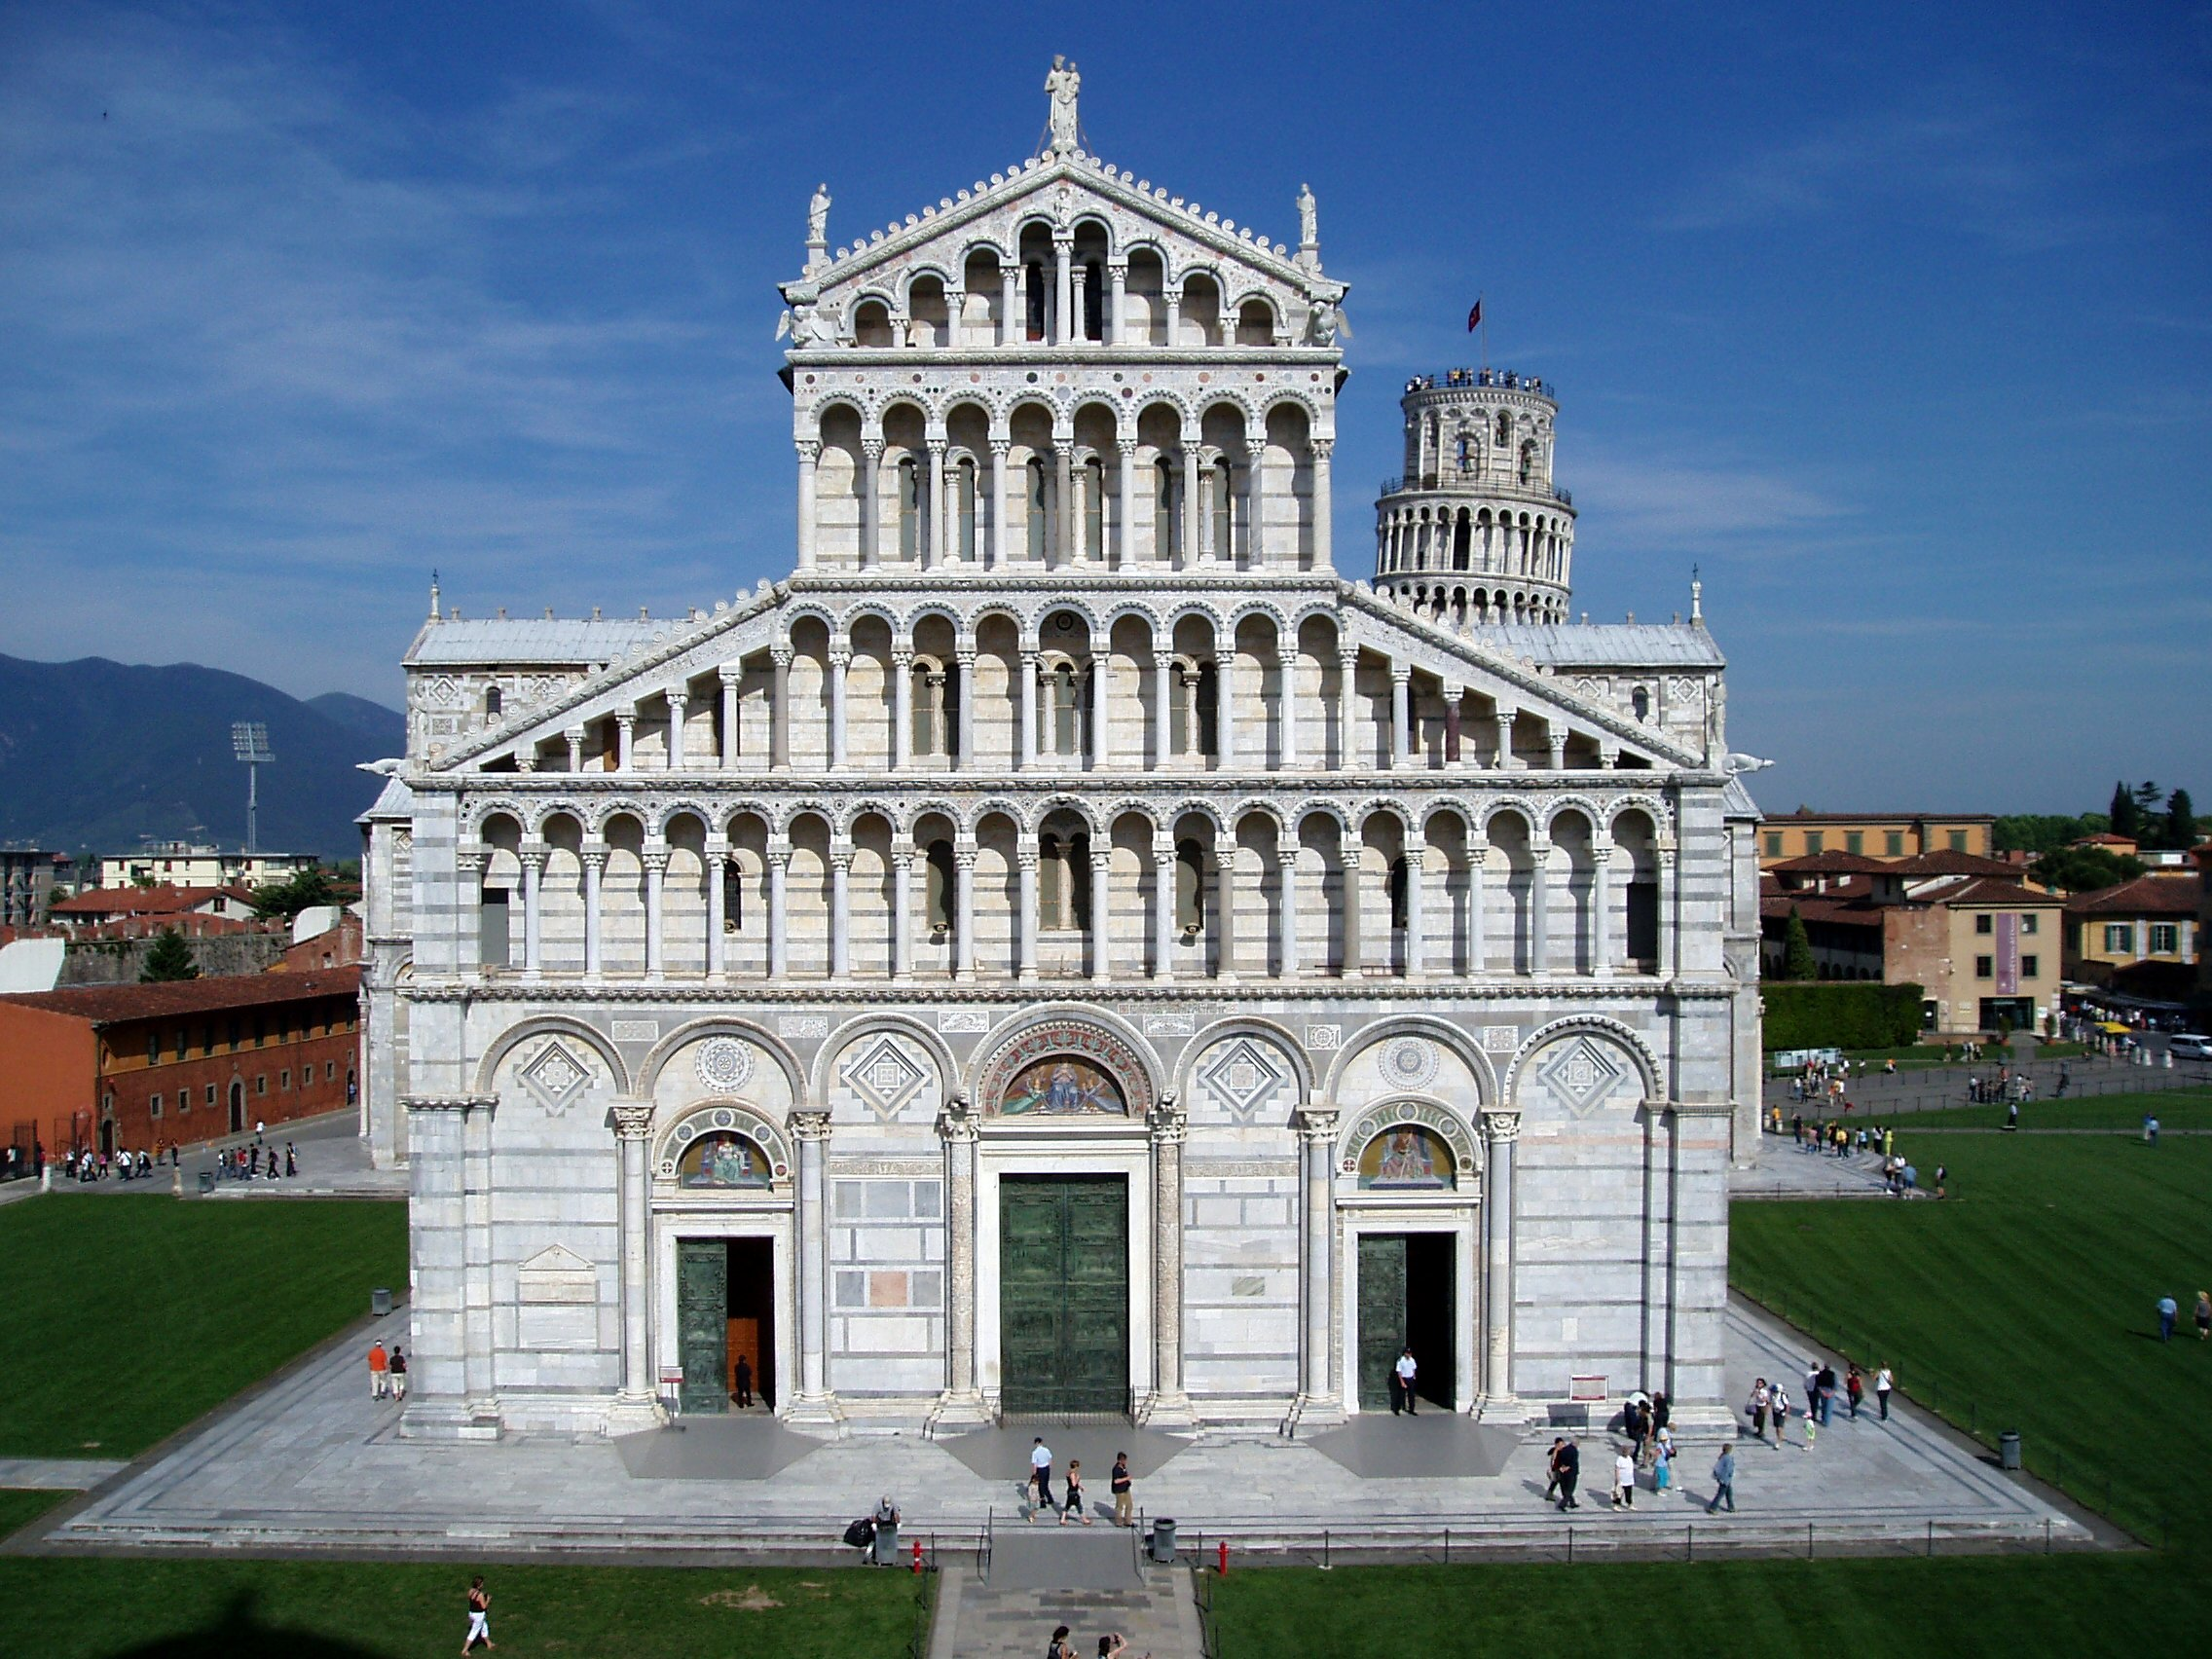 description of pisa italy essay A little larger than the state of arizona with 301,230 sq km, italy is located in southern europe, and extends its boot shape into the central mediterranean sea rome, the national capital, is located in the center of the country.